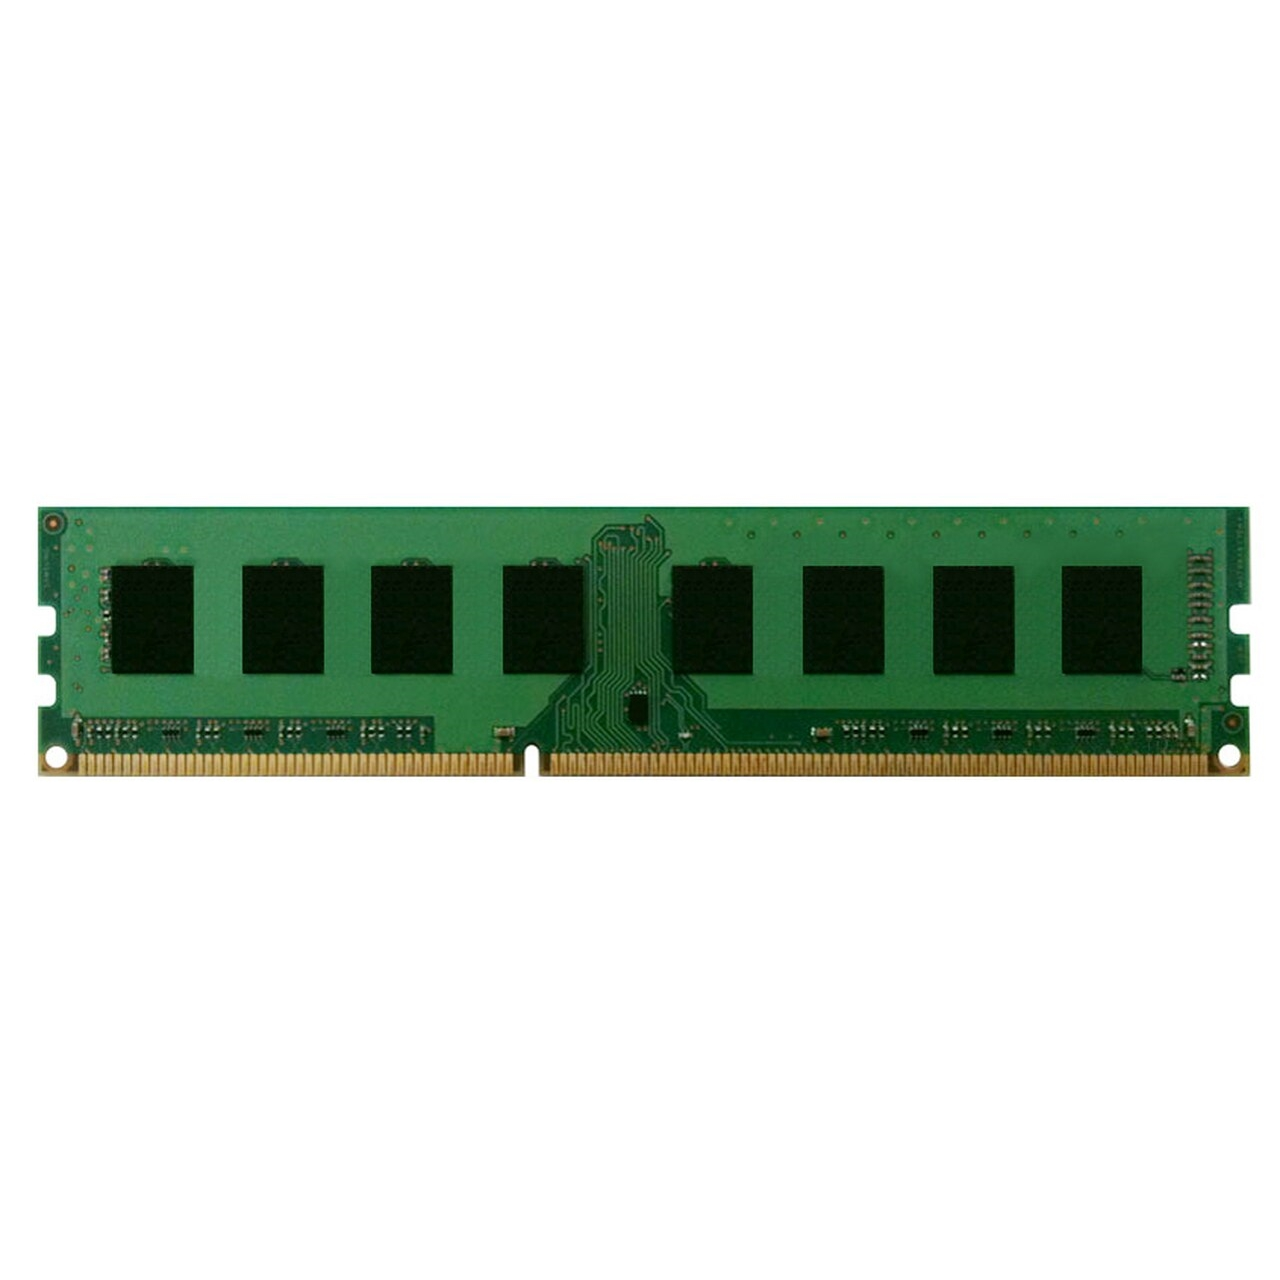 KINGSTON 8GB DDR3 1600MHZ CL11 PC RAM VALUE KVR16N11/8GBK Kutusuz